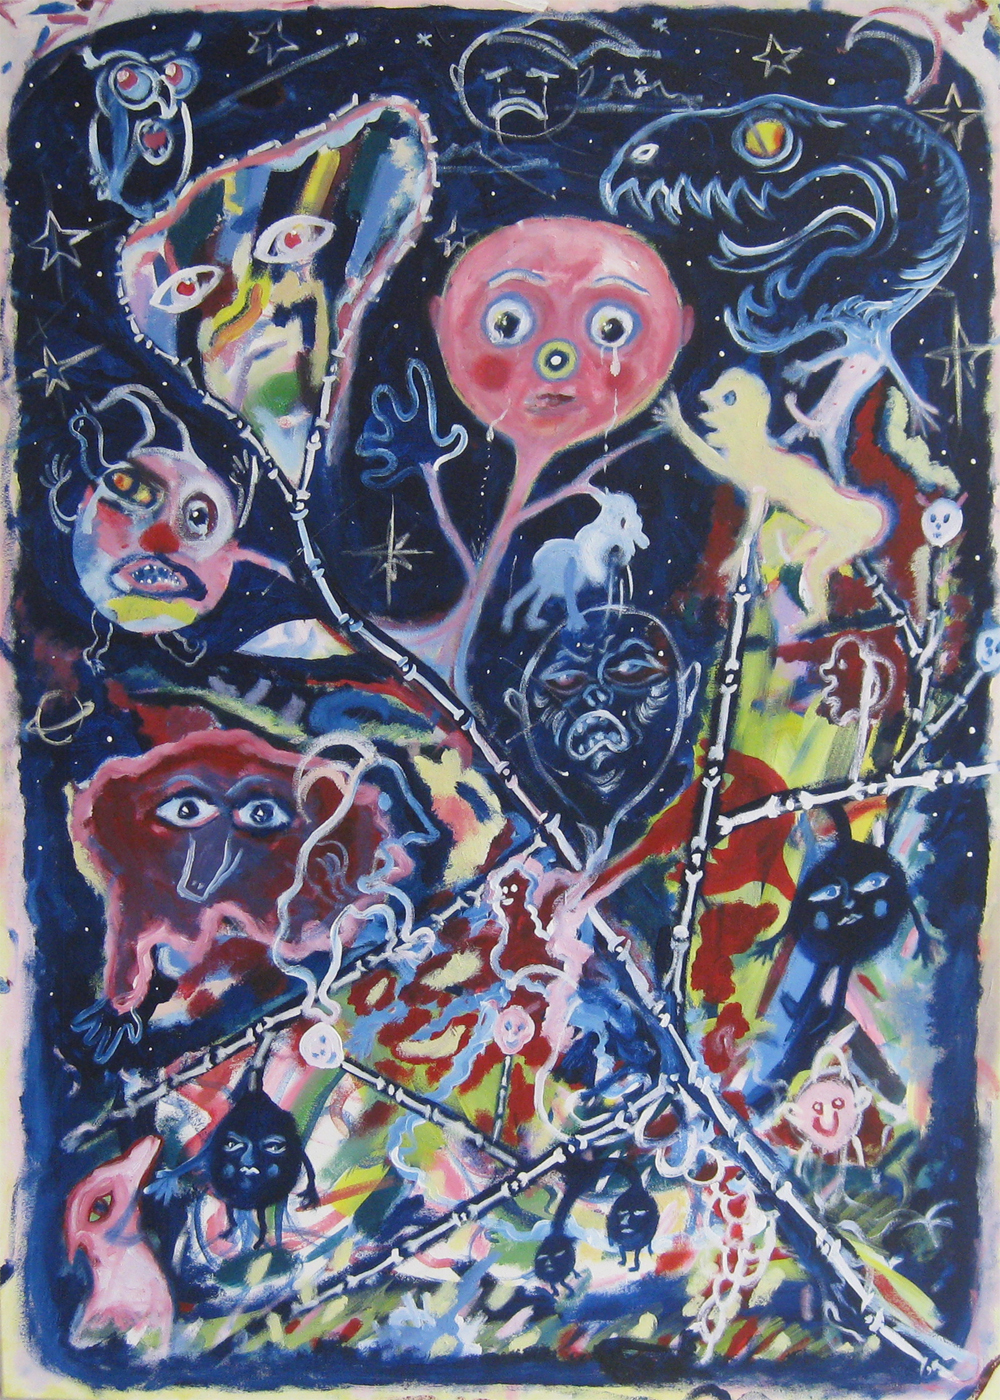 Moonchild  60 x 120  Acrylic on canvas